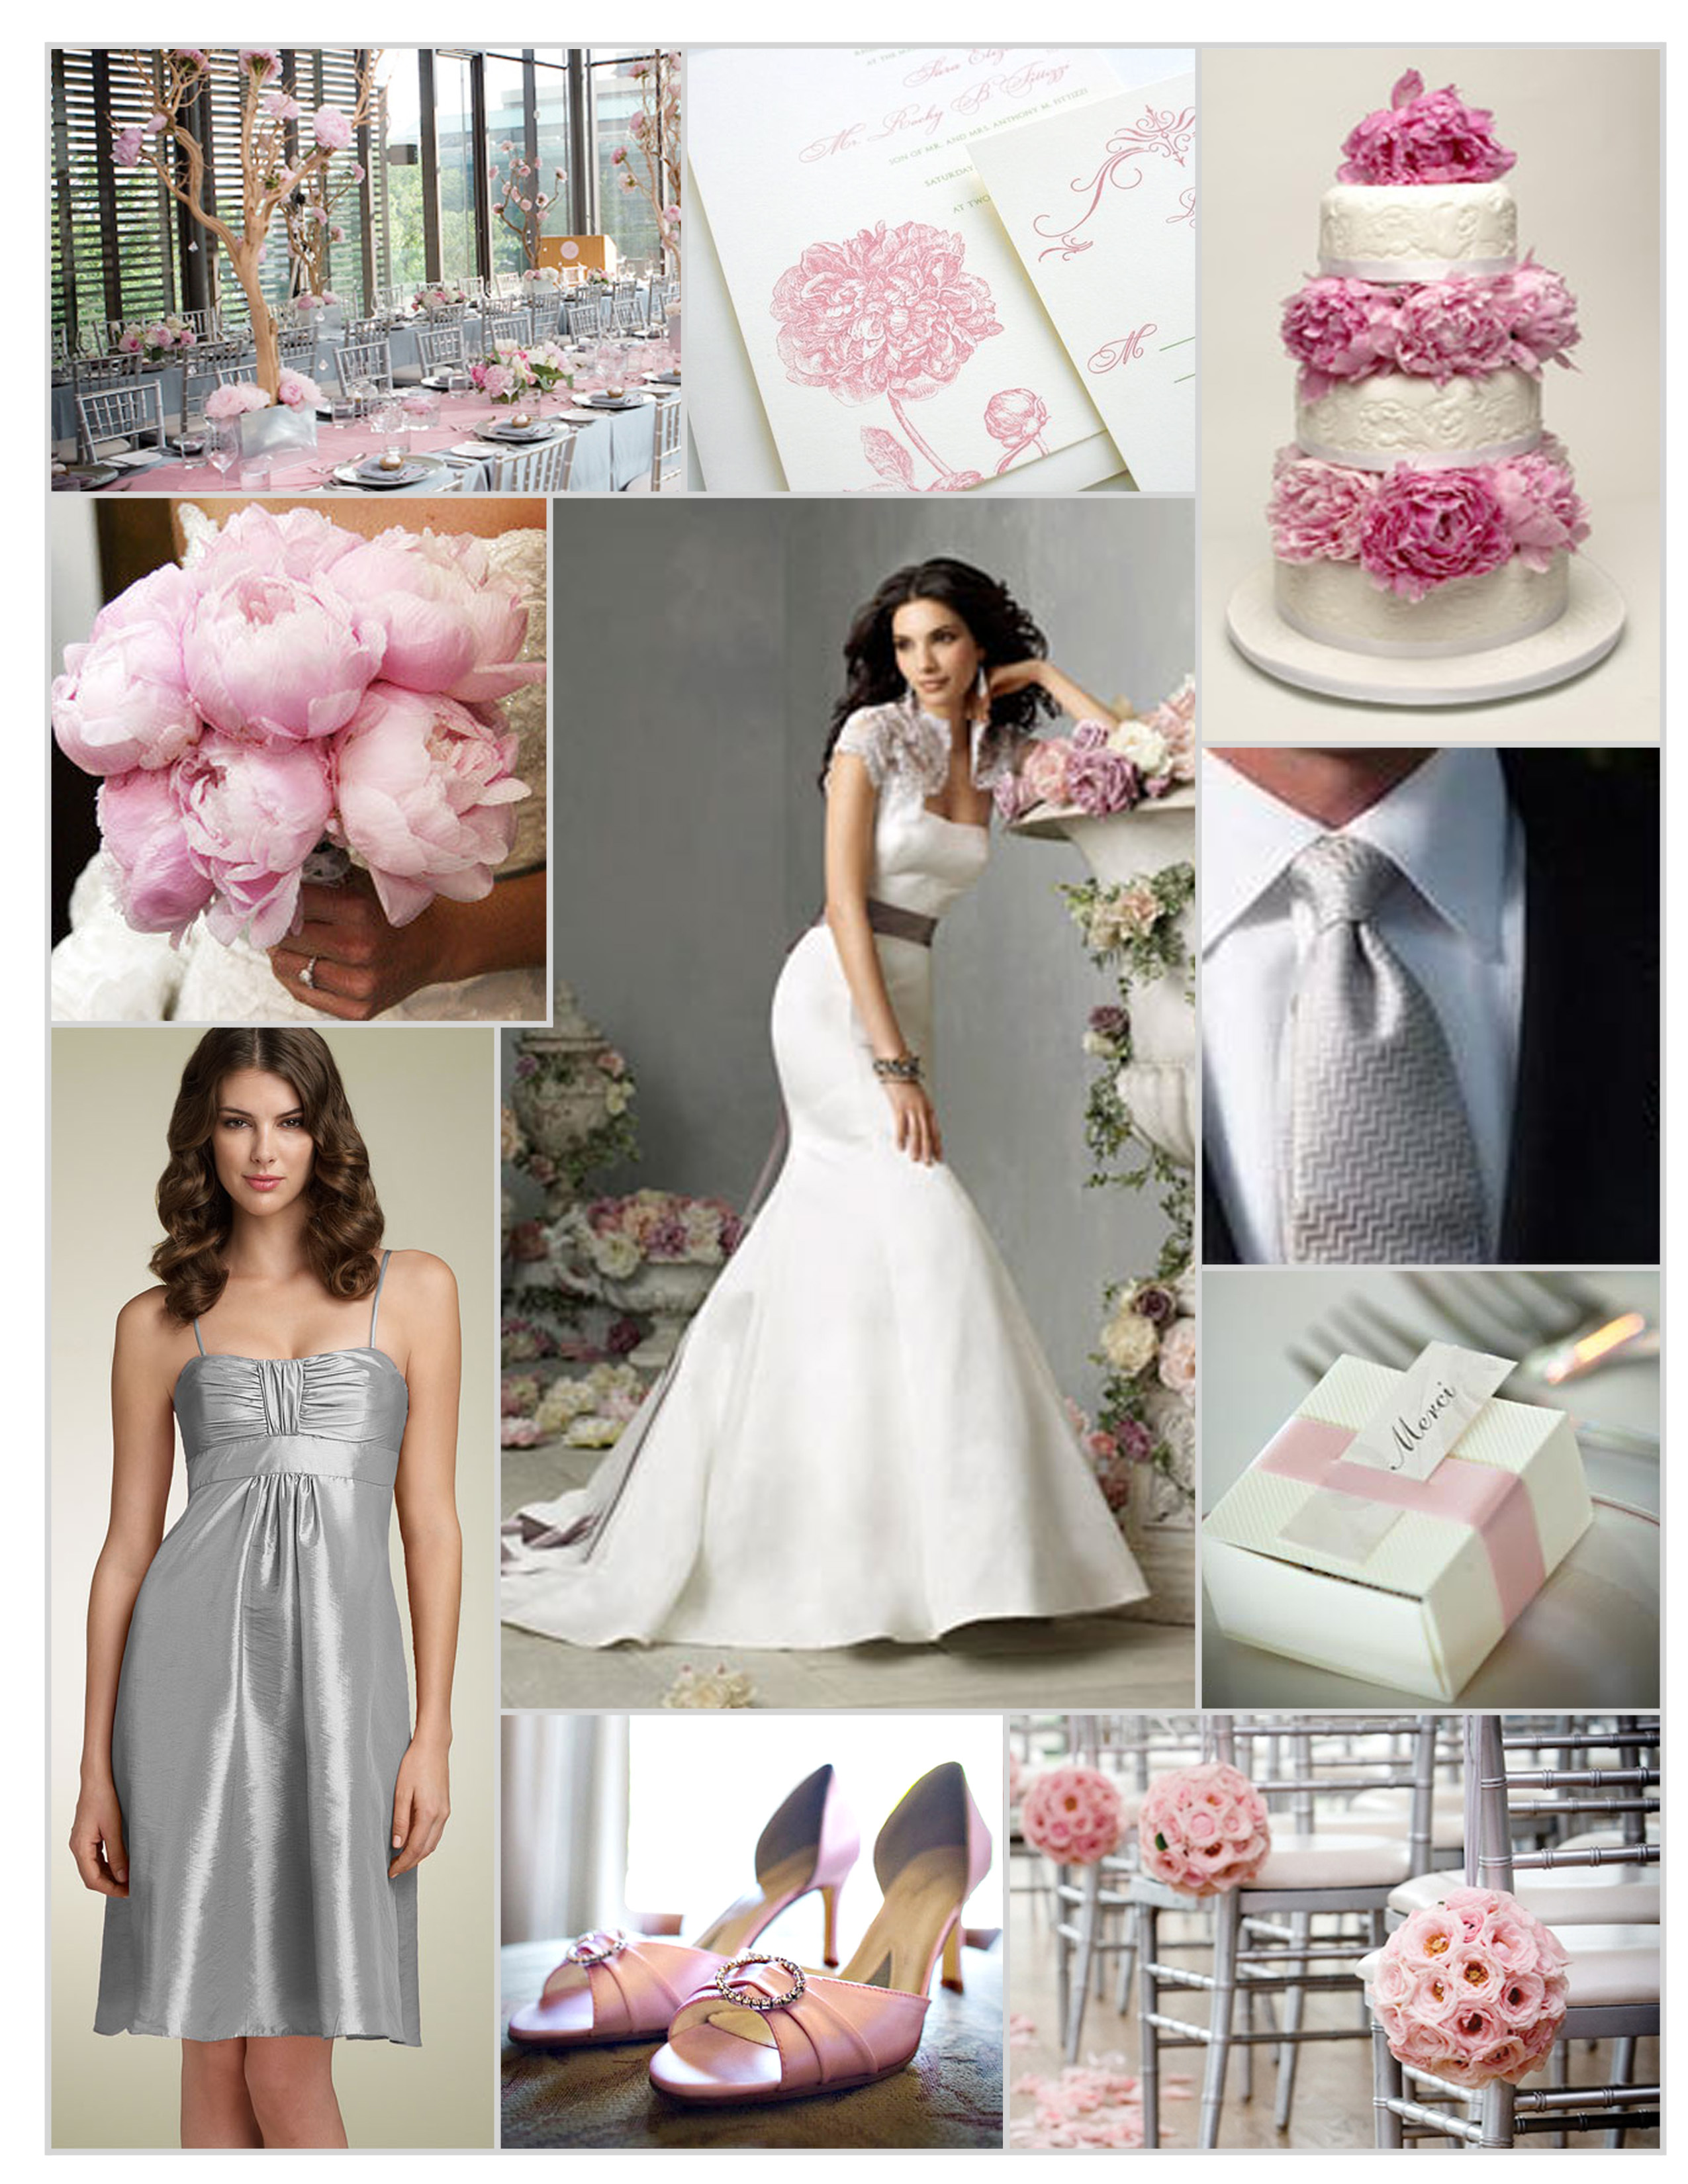 Ceremony, Inspiration, Reception, Flowers & Decor, Bridesmaids, Bridesmaids Dresses, Wedding Dresses, Shoes, Cakes, Fashion, pink, silver, cake, dress, Ceremony Flowers, Bridesmaid Bouquets, Flowers, Jim hjelm, Board, Nordstrom, Flower Wedding Dresses